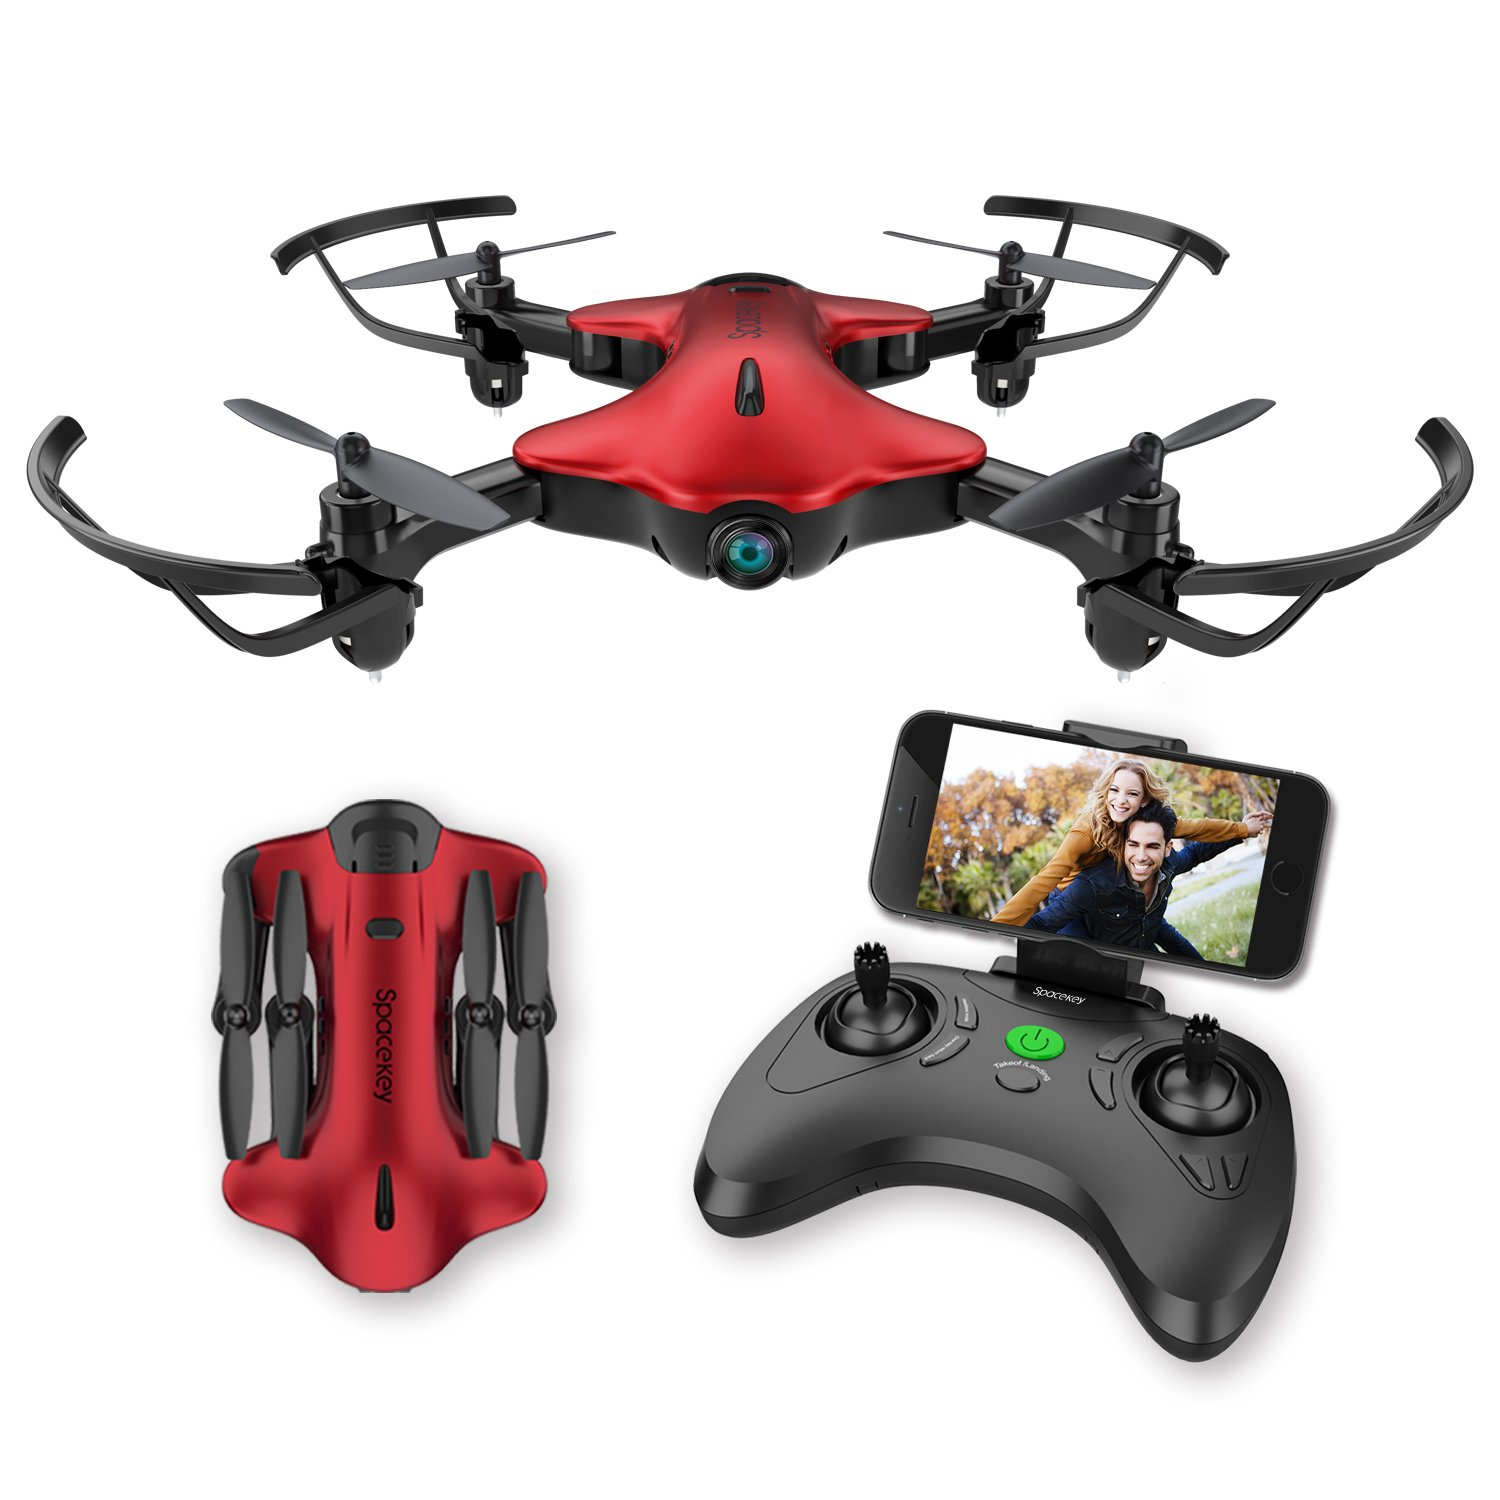 Drone for Kids,Spacekey FPV Wi-Fi Drone with Camera 720P HD, Real-time Video Feed, Great Drone for Beginners,Quadcopter with Altitude Hold, One-Key Take-Off, Landing and Foldable Arms (Red)